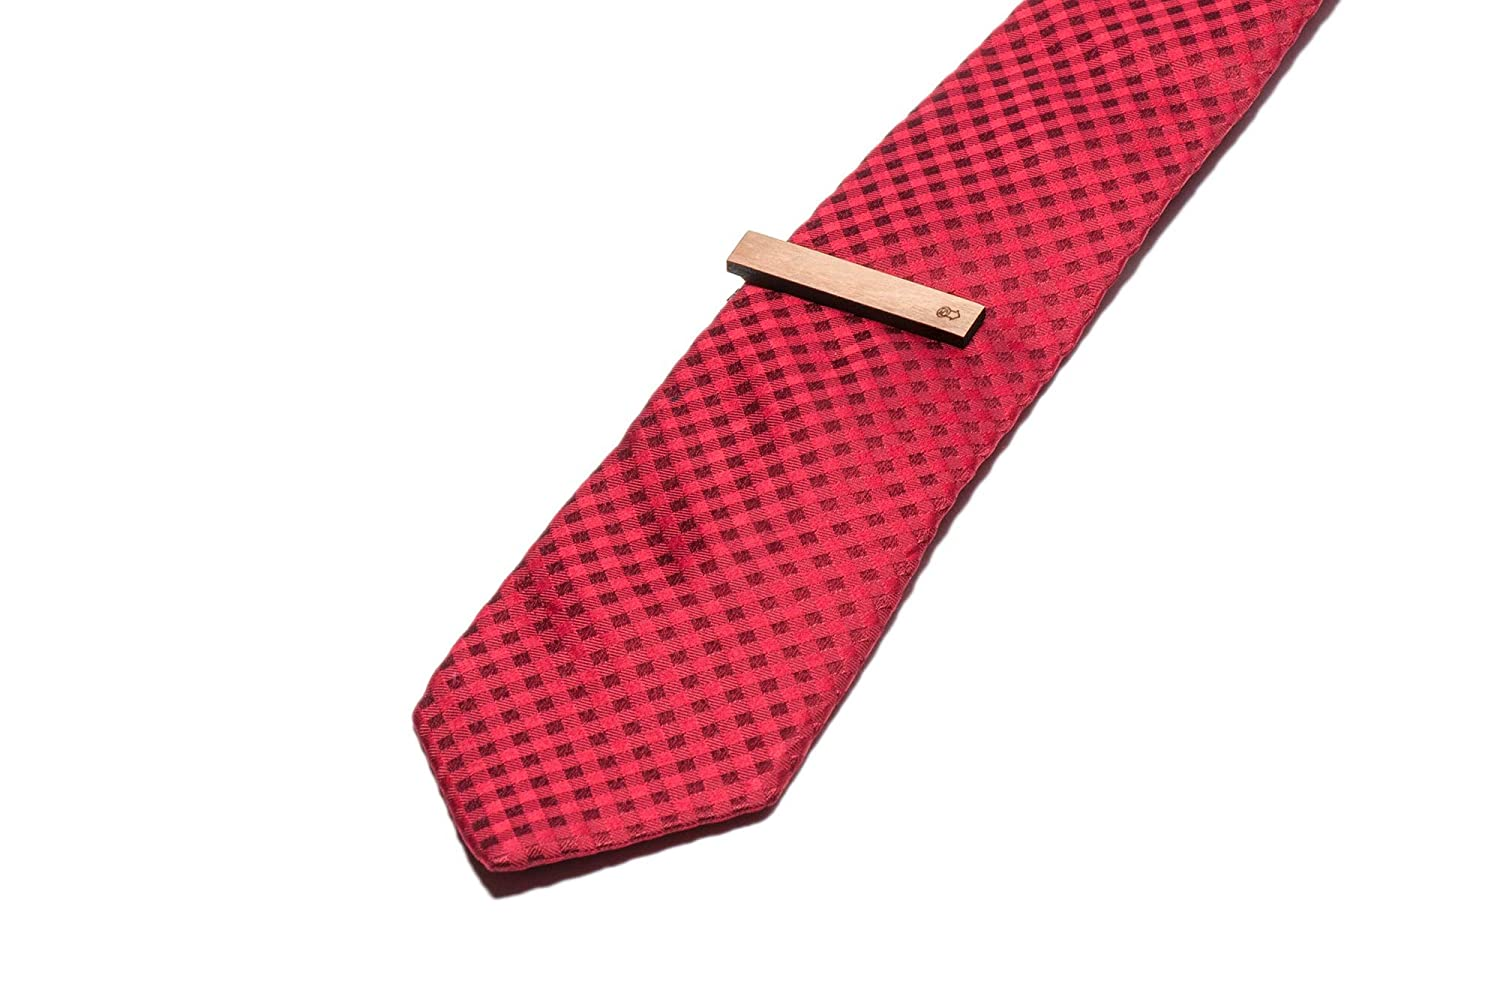 Wooden Accessories Company Wooden Tie Clips with Laser Engraved Electronics Store Design Cherry Wood Tie Bar Engraved in The USA